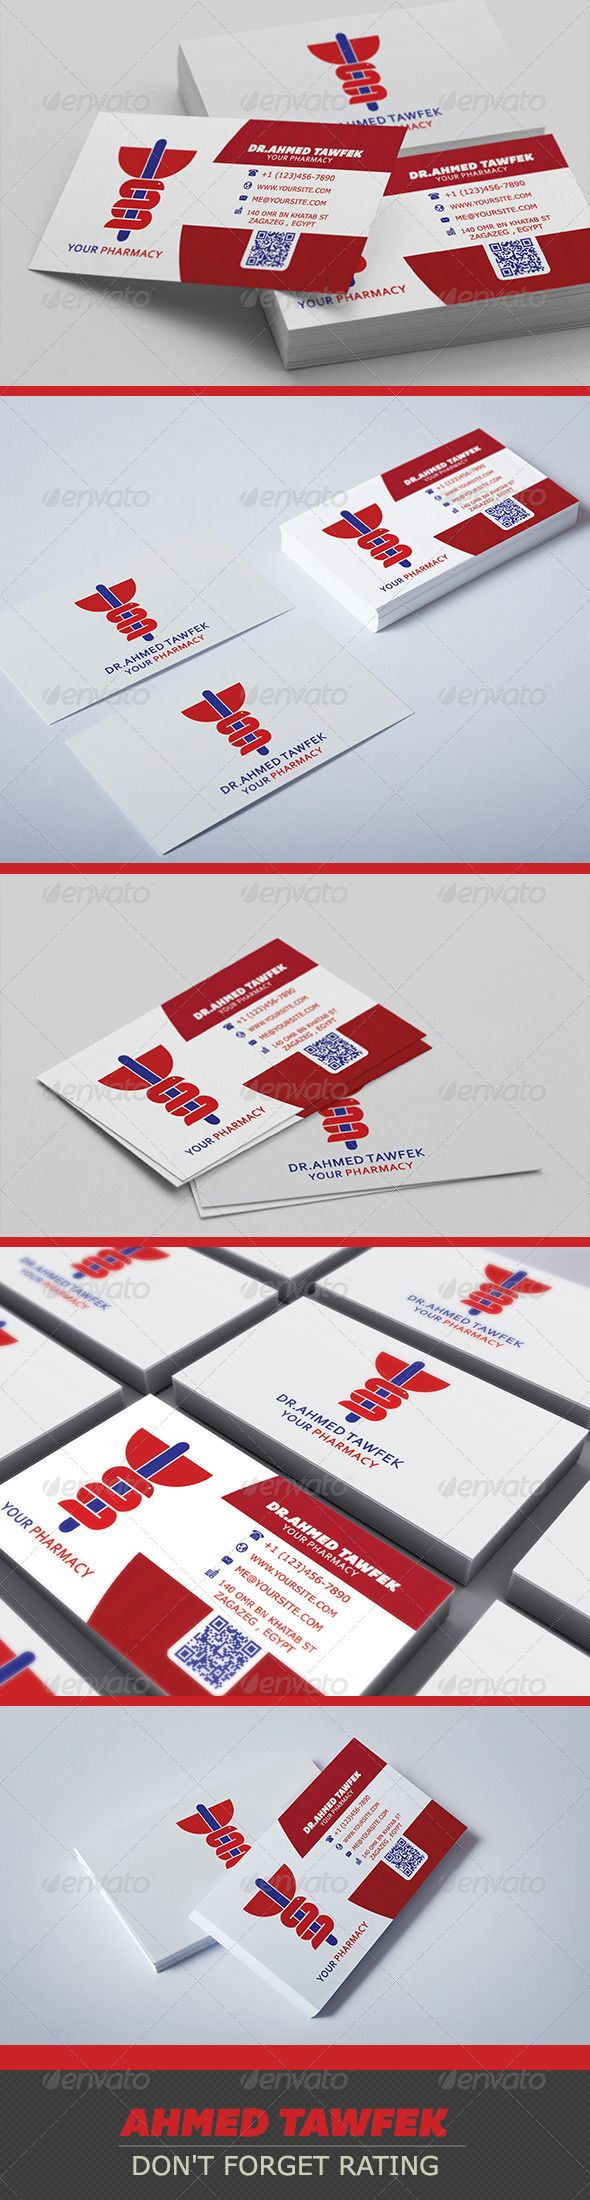 Pharmacy business card graphicriver pharmacy business card pharmacy business card graphicriver pharmacy business card pharmacy business card all text layers are full magicingreecefo Images